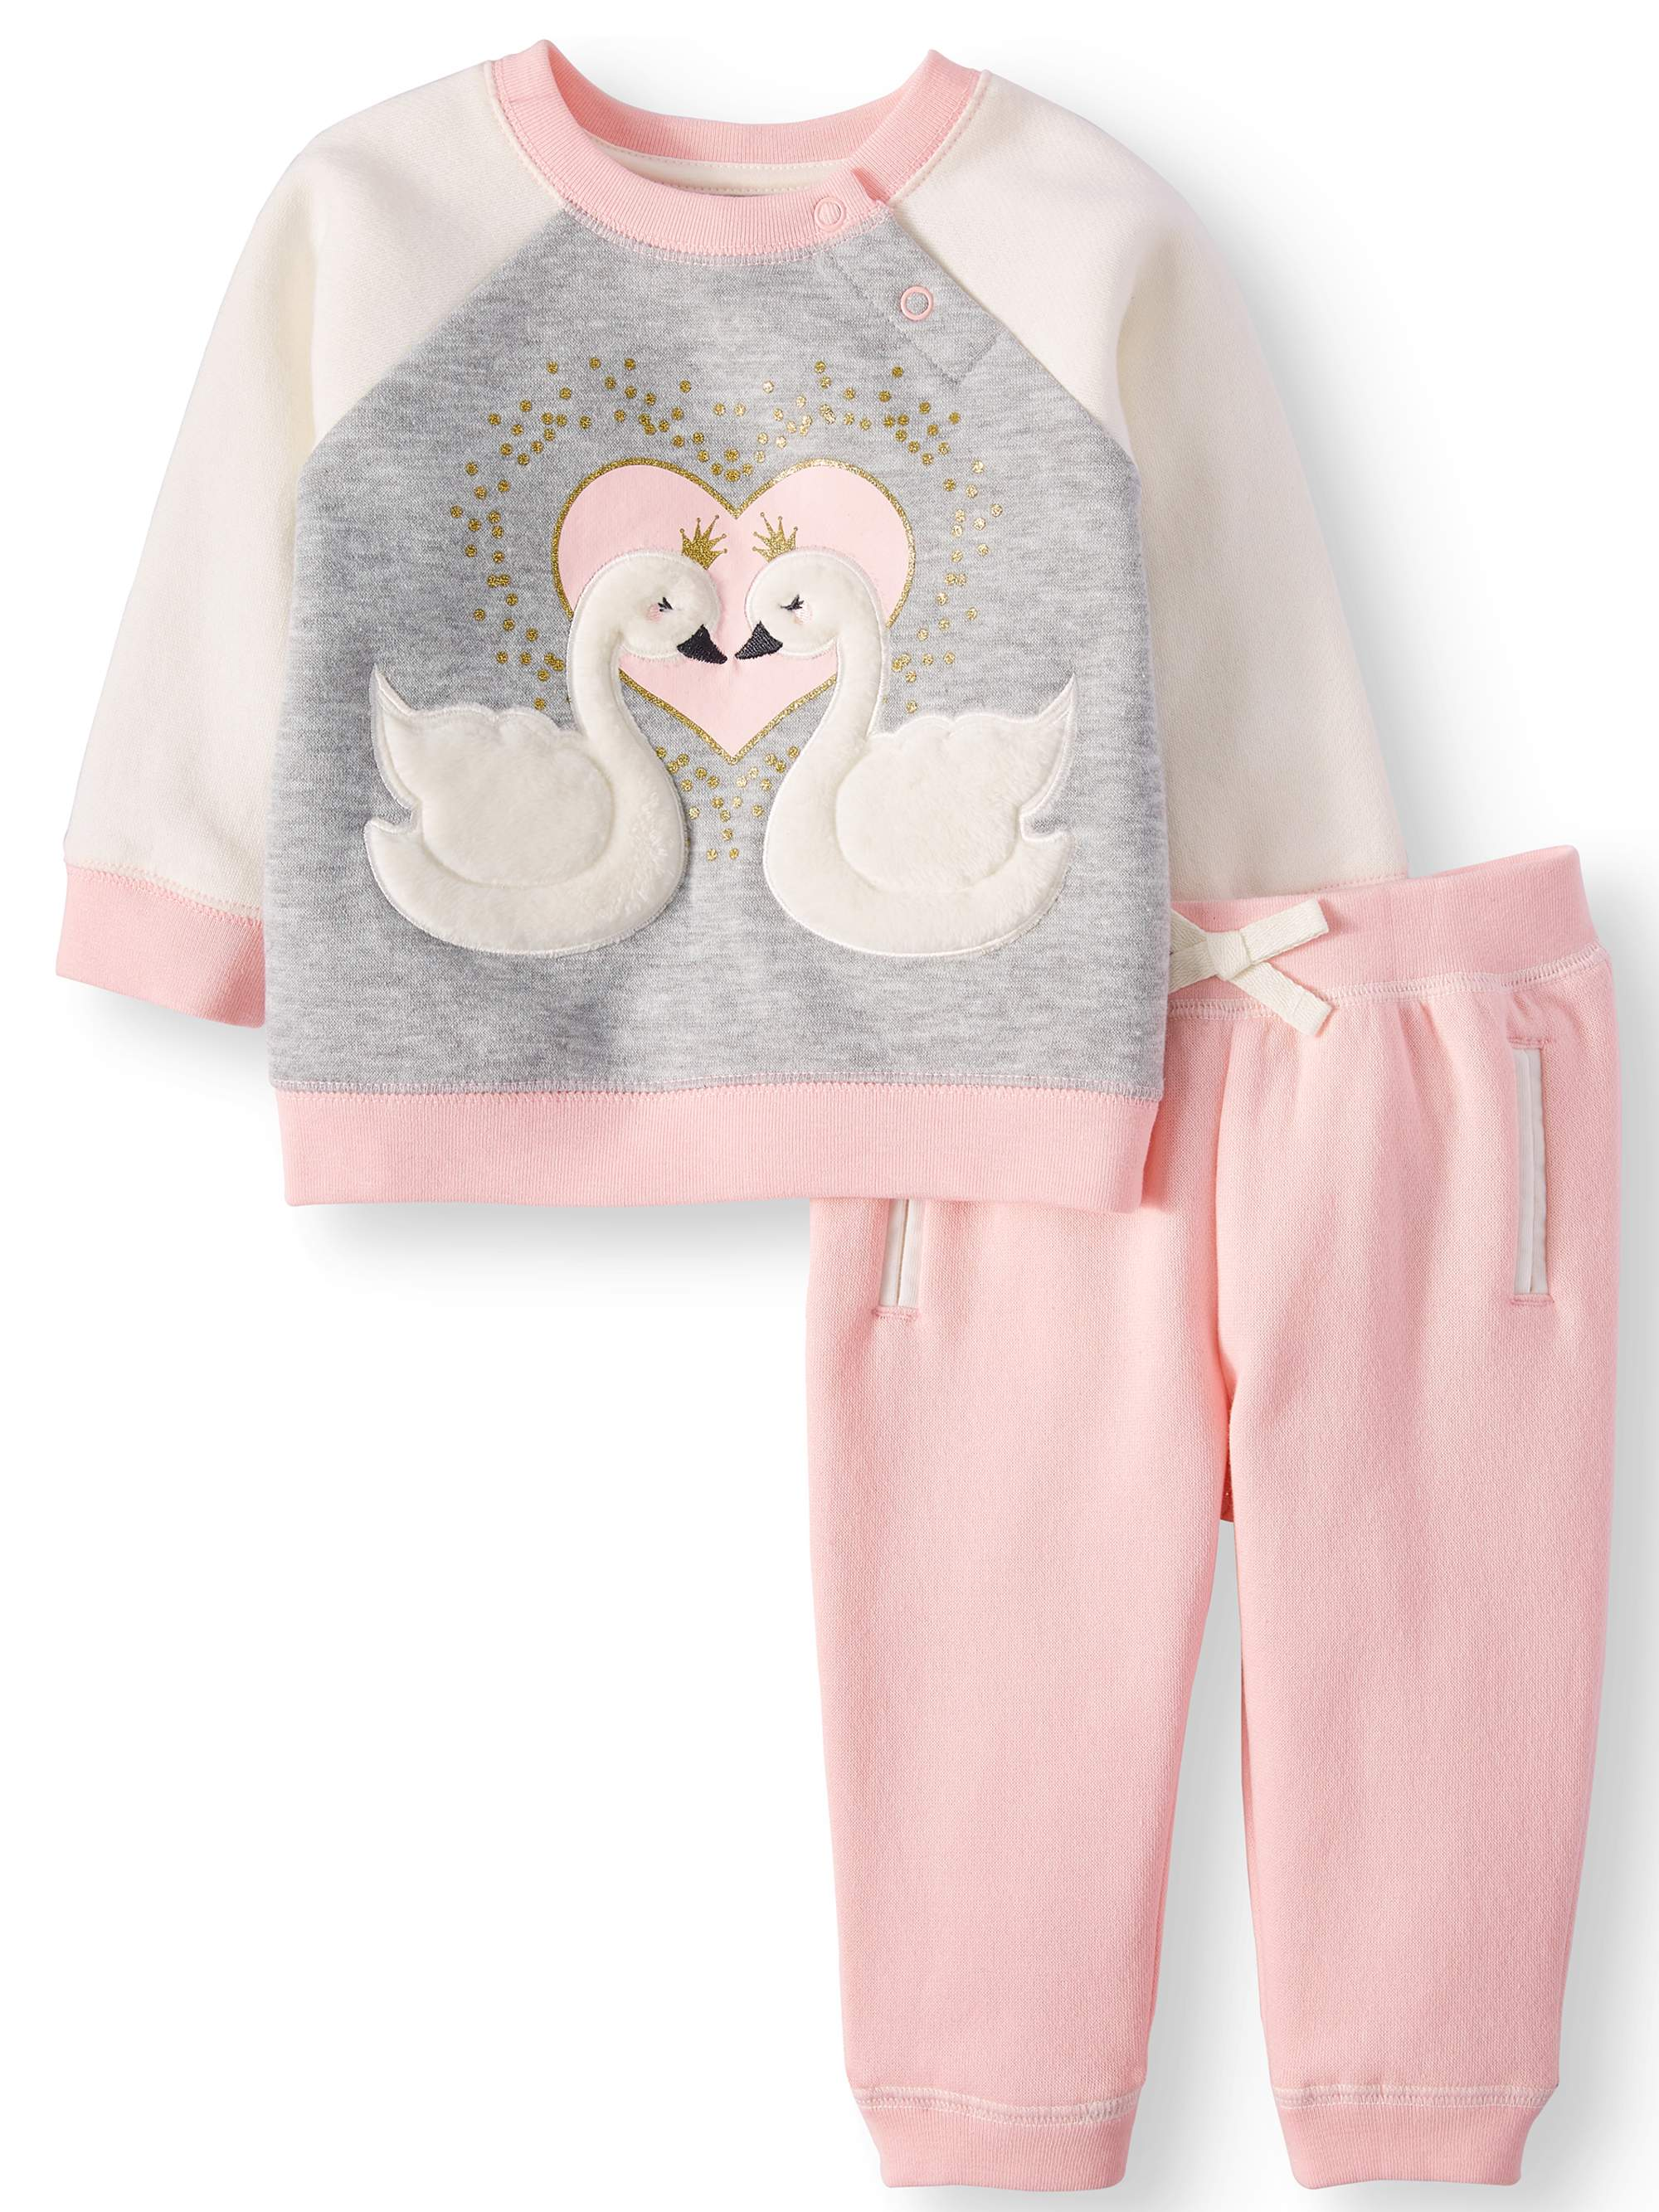 3D Interactive Sweatshirt & Jogger Pants, 2-Piece Outfit Set